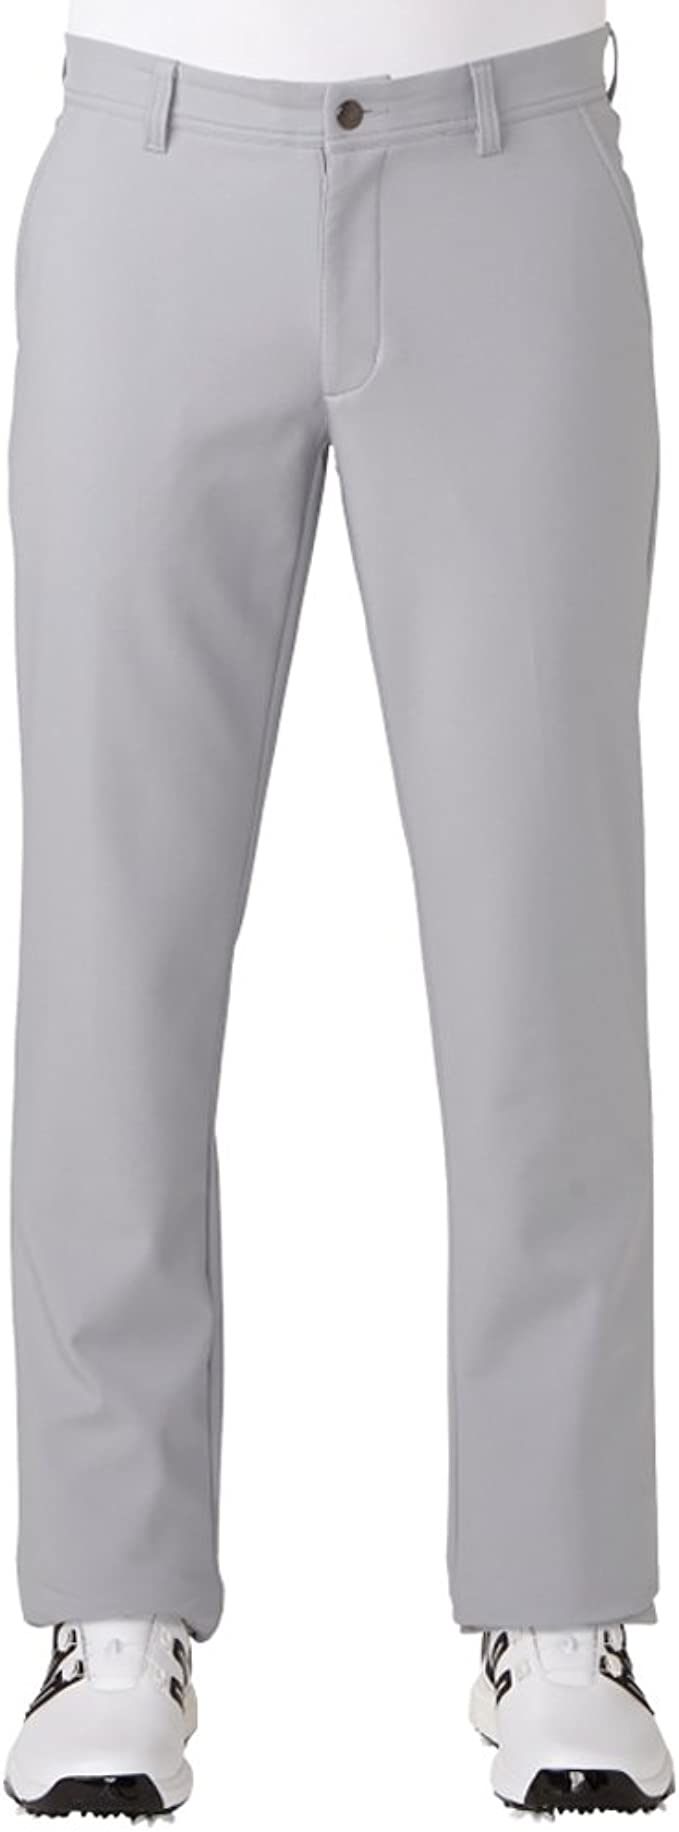 adidas Golf Men's Ultimate Climawarm Golf Pants